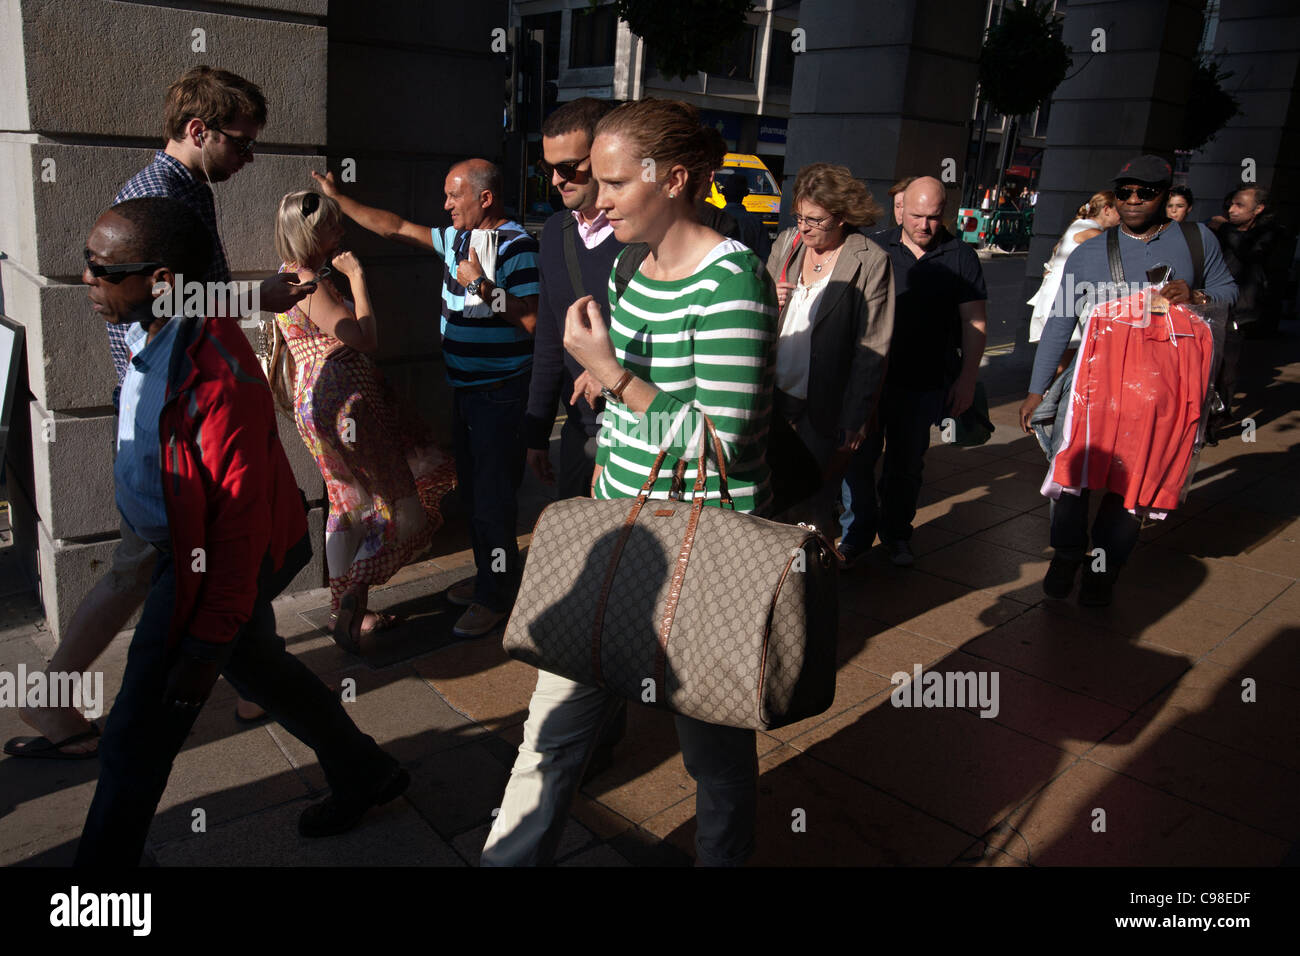 crowd of people in piccadilly london - Stock Image